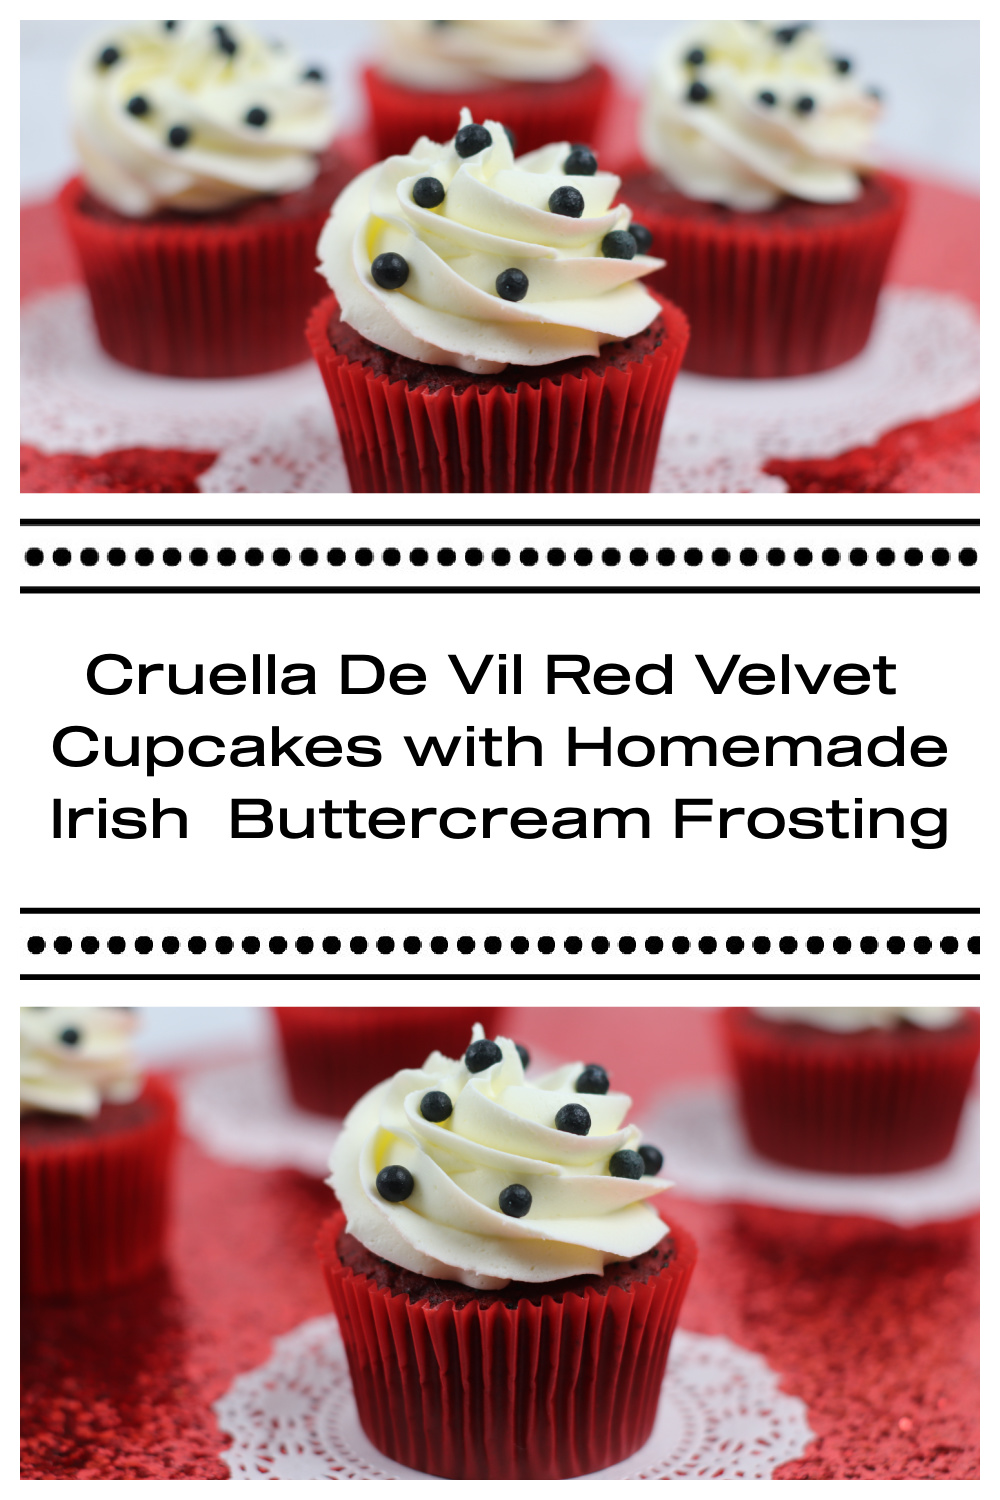 Red Velvet Cupcakes with White Frosting and Black Candies on a paper doily